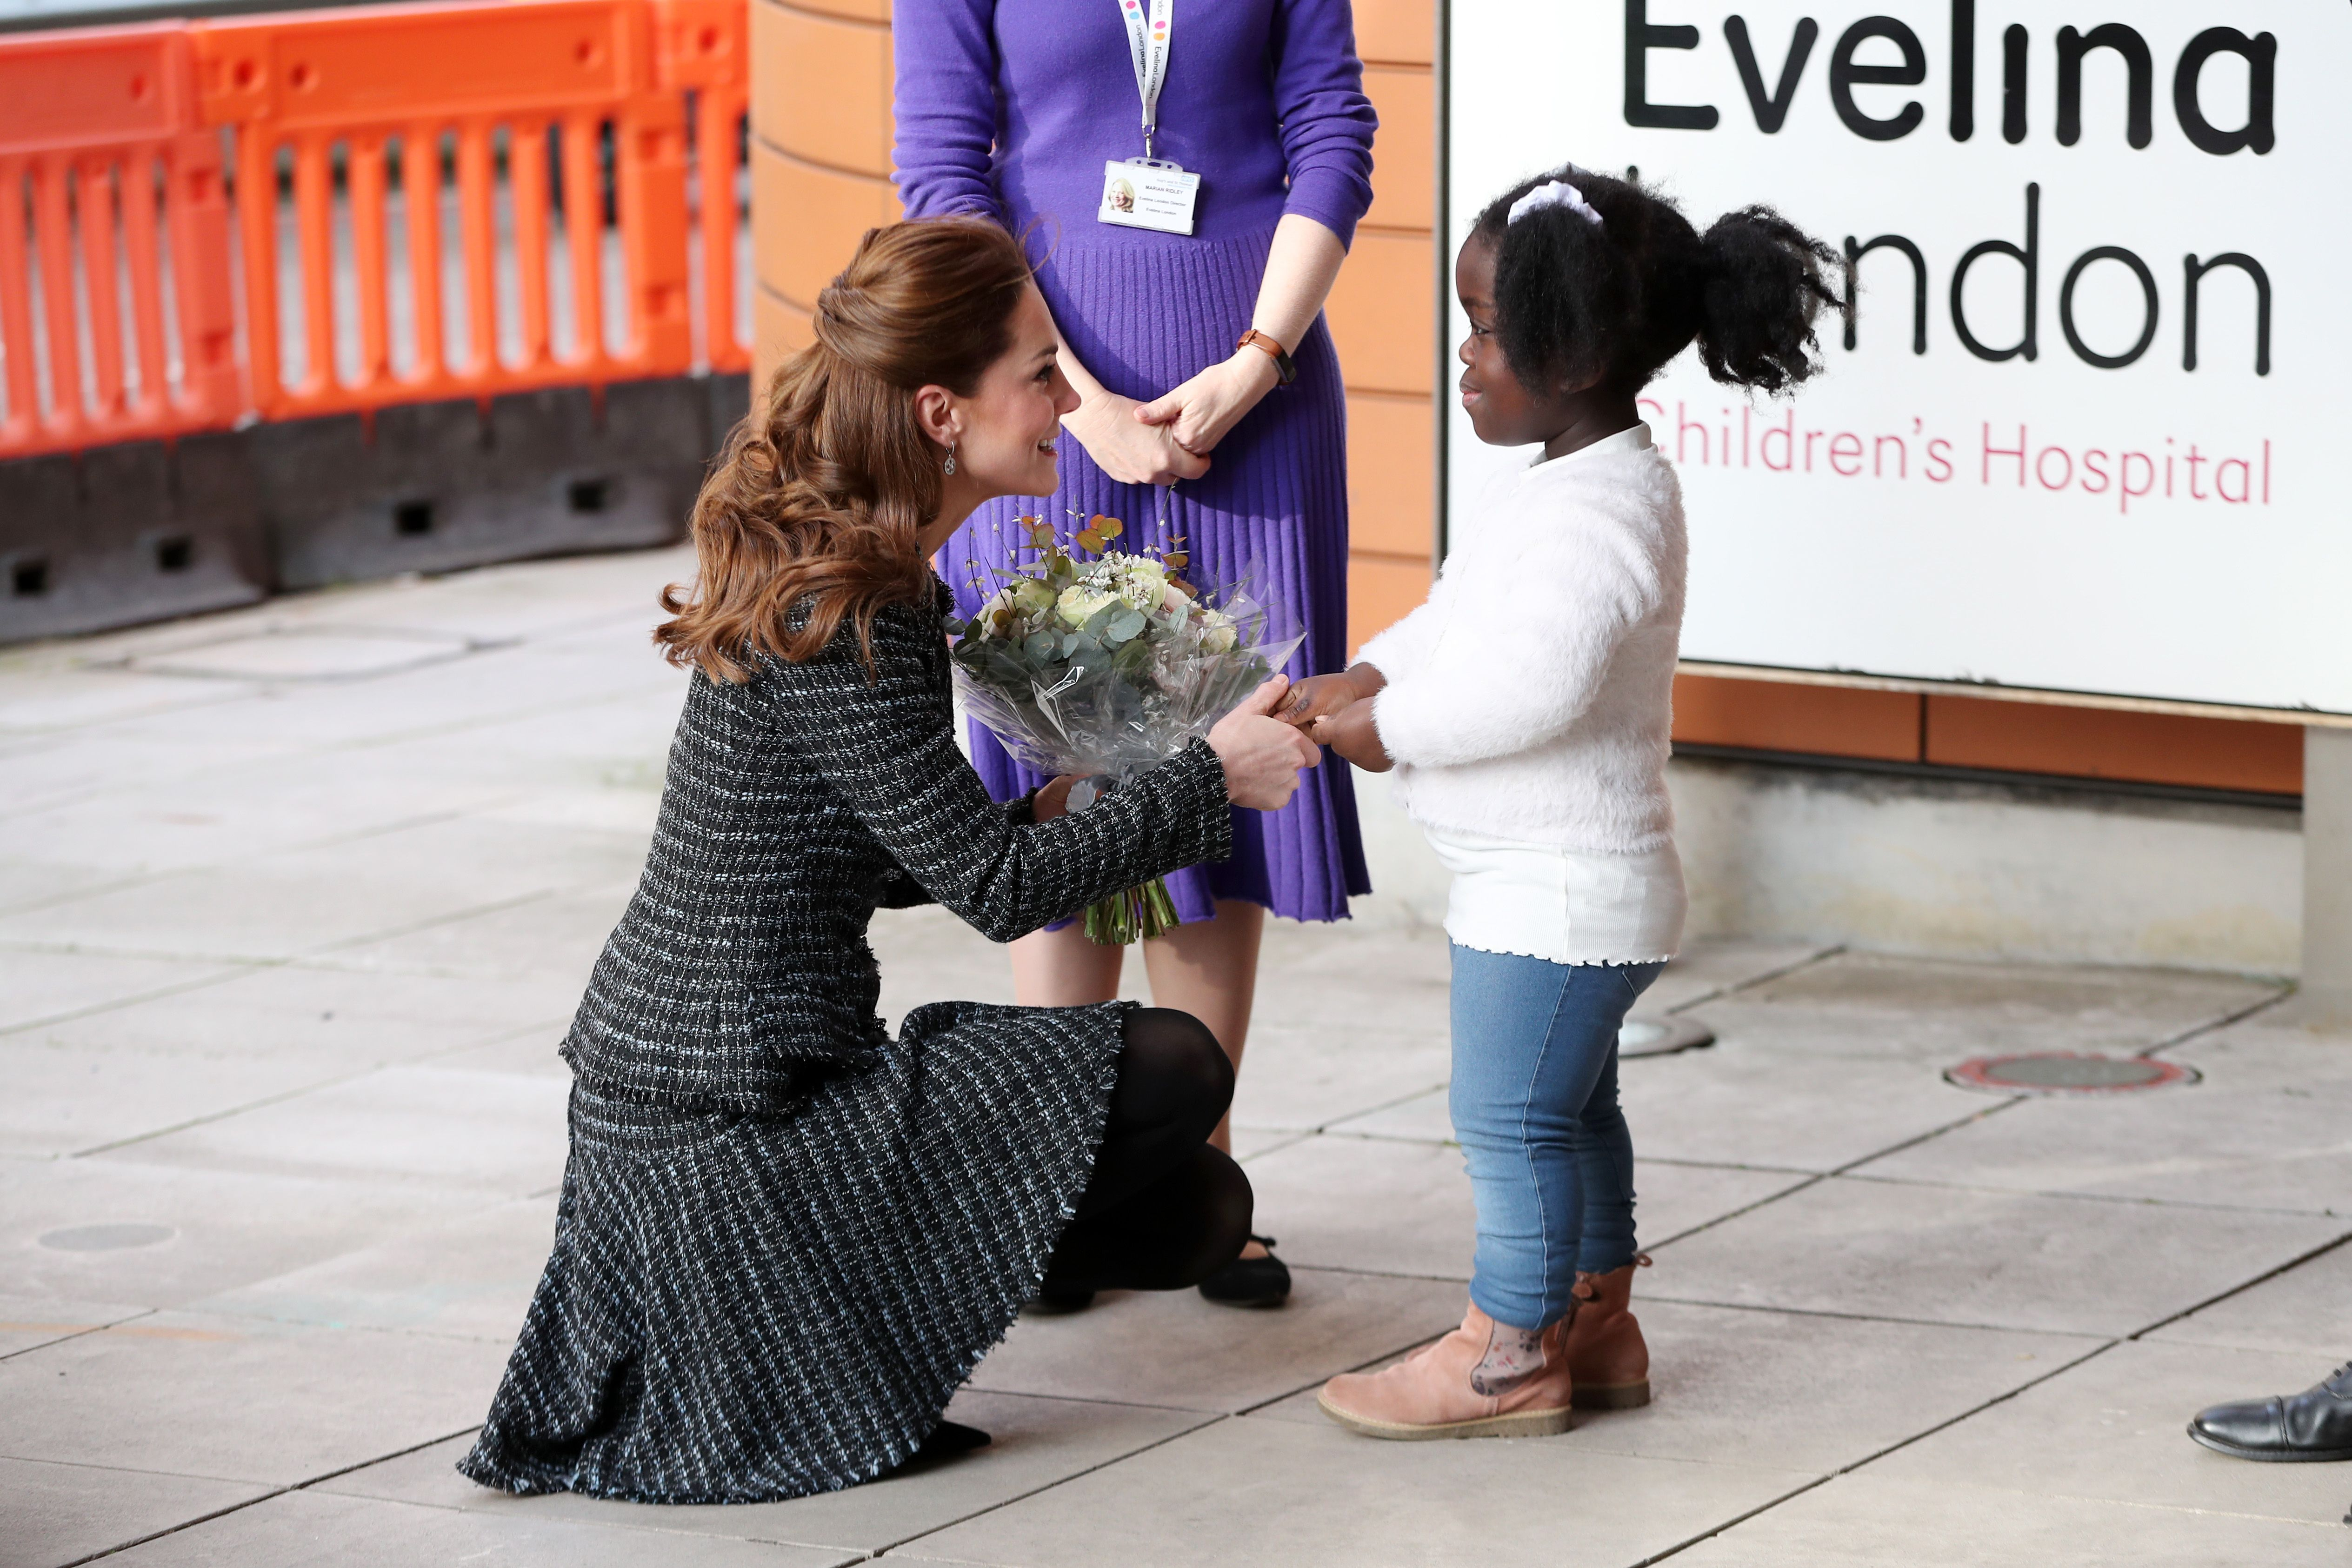 The Duchess of Cambridge steps out in tweed skirt suit for visit to a children's hospital